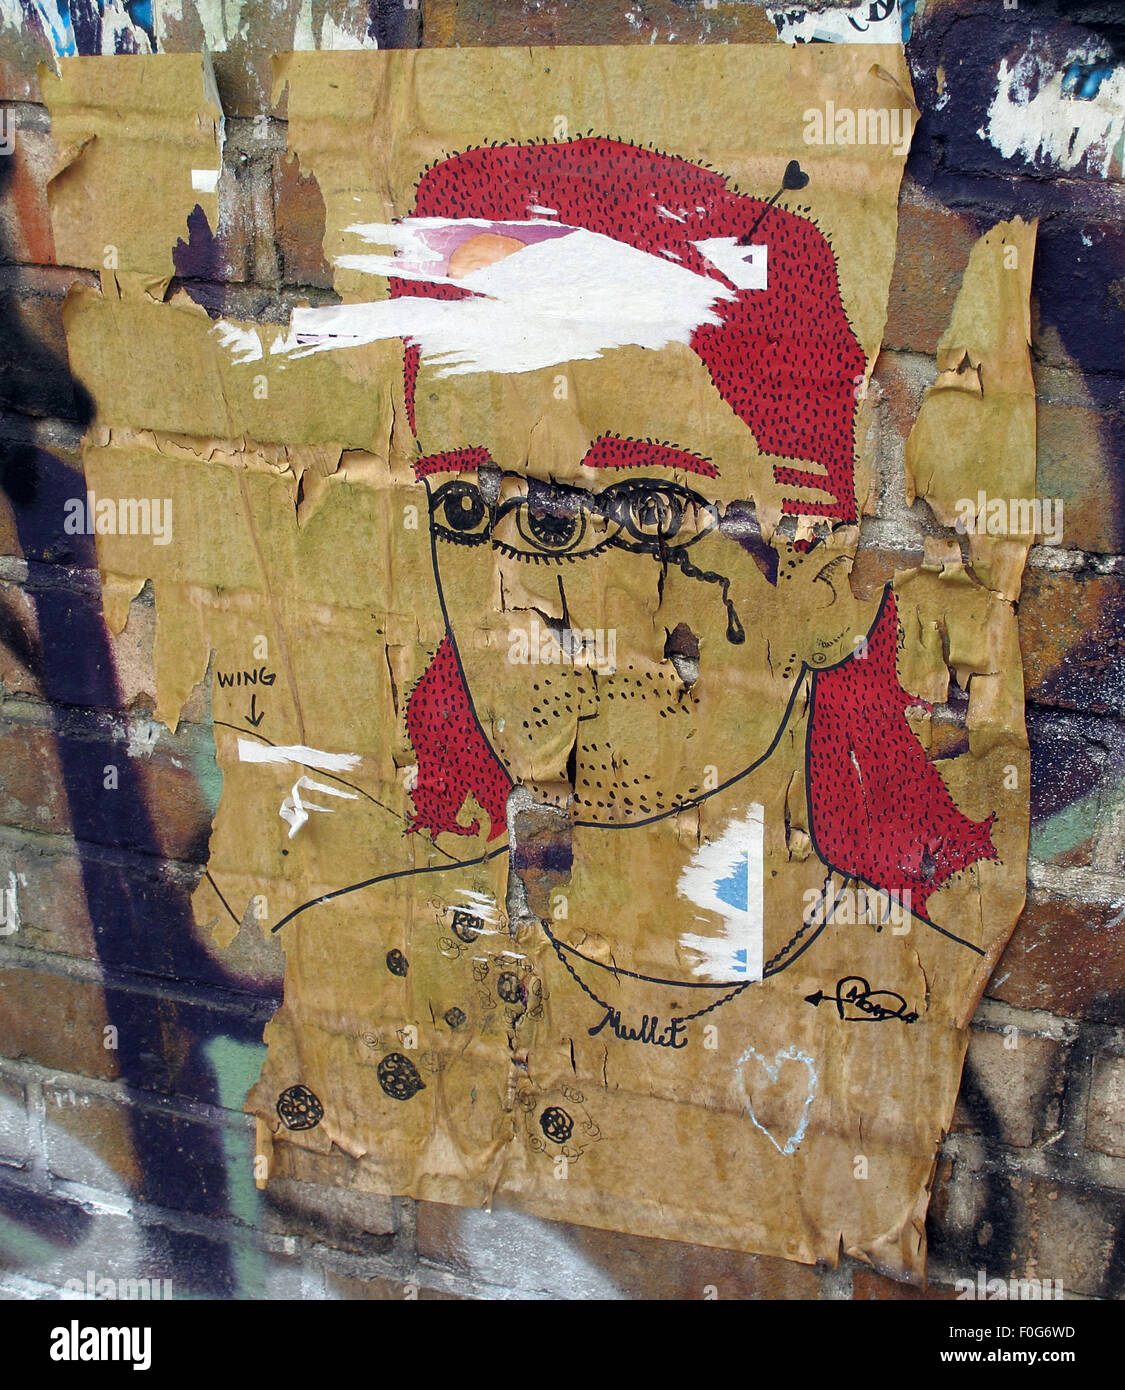 Mitte,DircksenStr,Berlin,Germany,streetArt,artist,of,the,streetsmixedmedia,mixed,media,poster,paper,wall,walls,city,cities,urban,hipster,controversial,paste,up,pasteup,Man,with,three,eyes,red,hair,GoTonySmith,Buy Pictures of,Buy Images Of